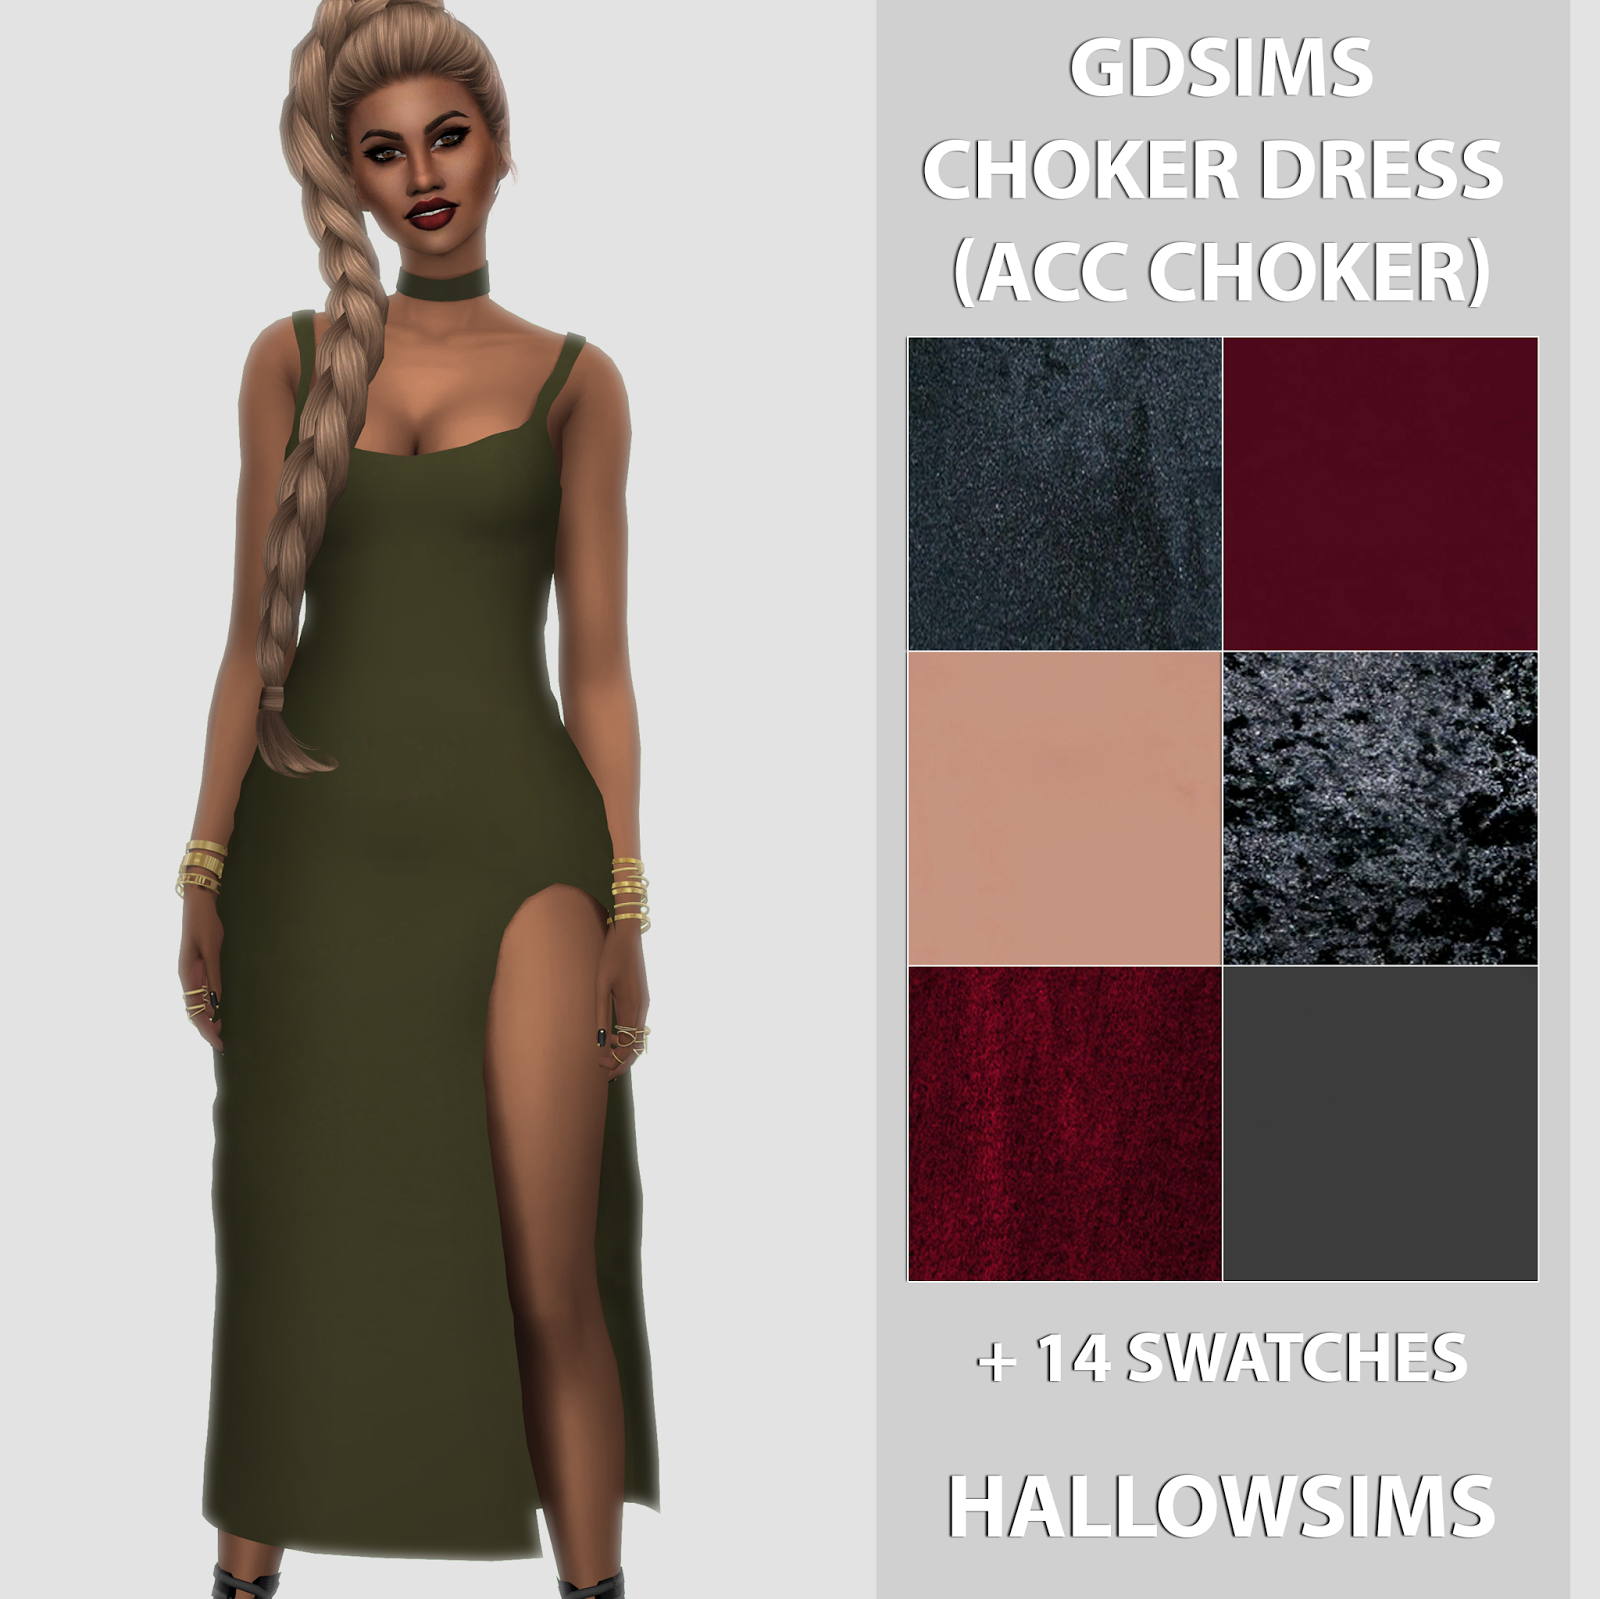 206 best images about sims 3 on pinterest dots sims 4 and warm - Find This Pin And More On Sims 4 Cc Clothes